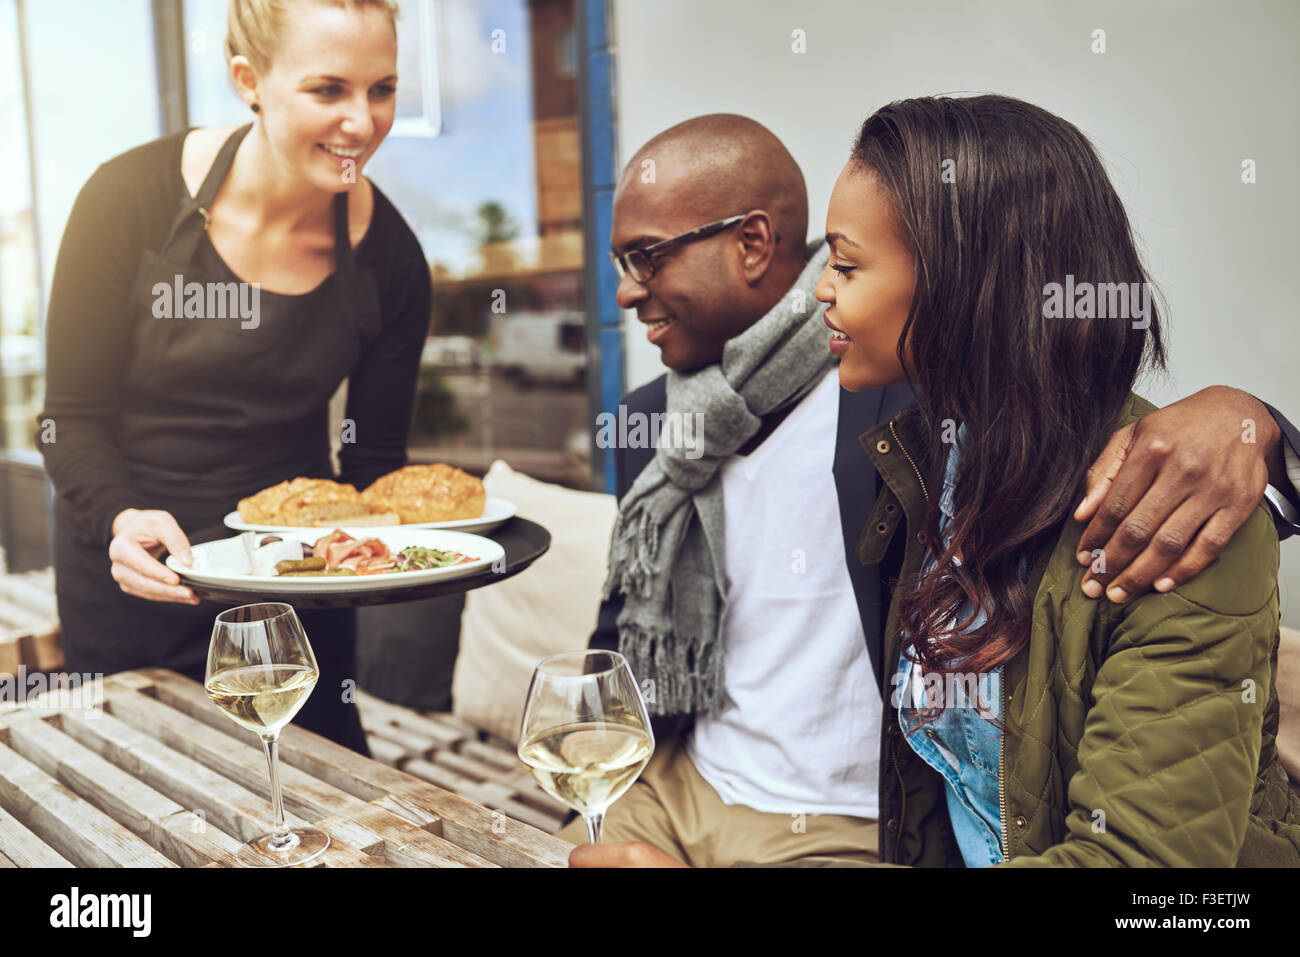 Waitress serving food to an affectionate African American couple sitting arm in arm at a restaurant table - Stock Image